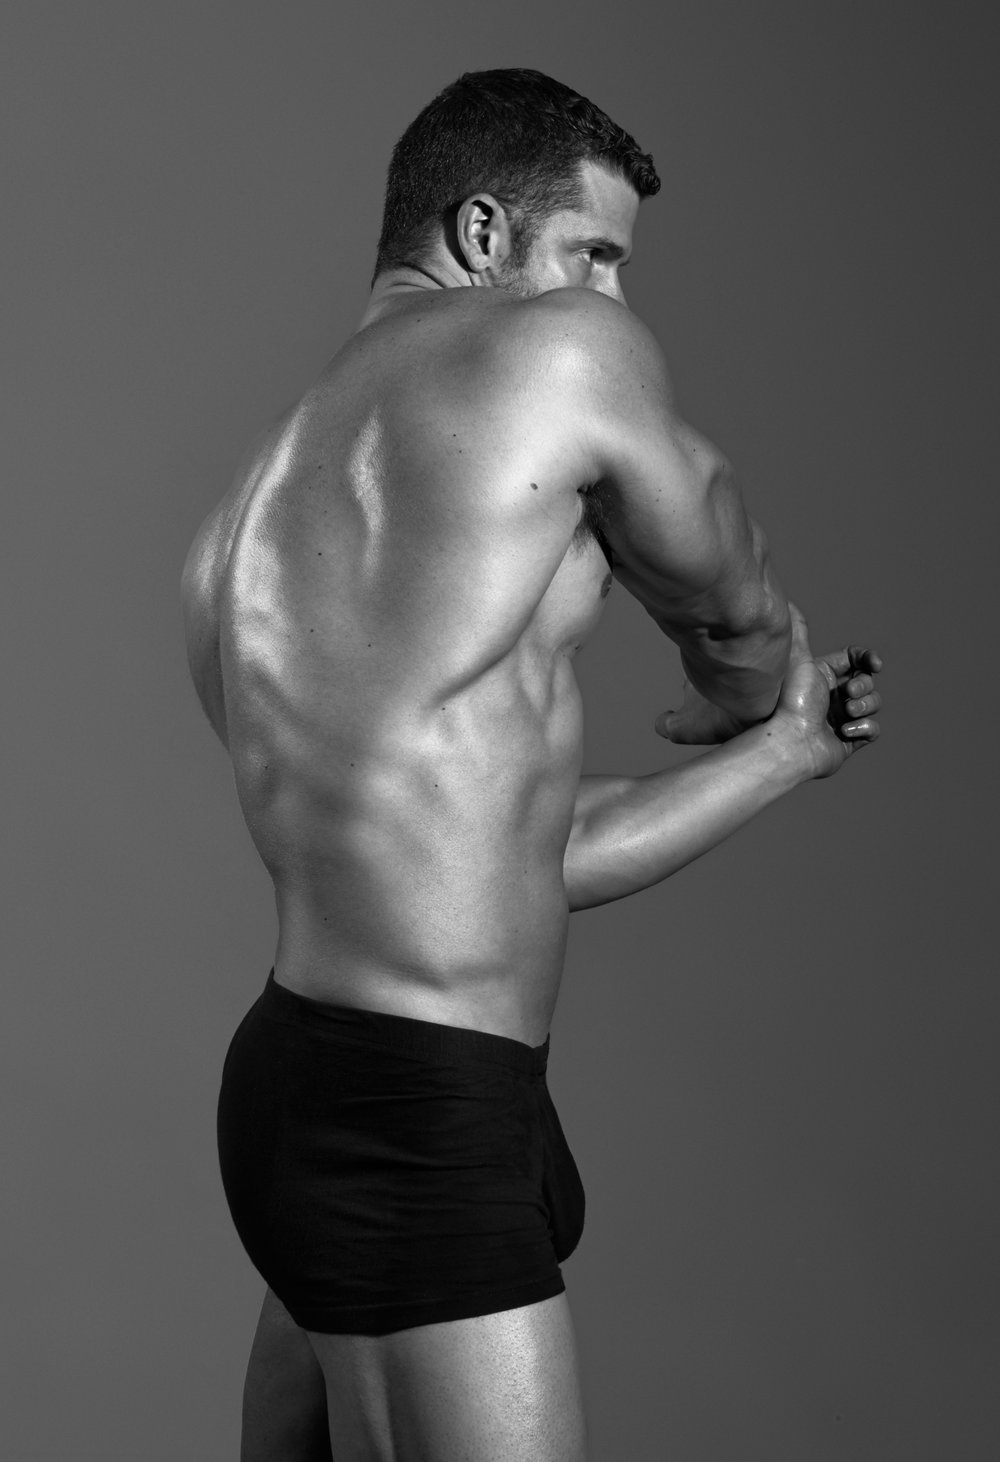 fitness-image-advertisement-black-white.jpg